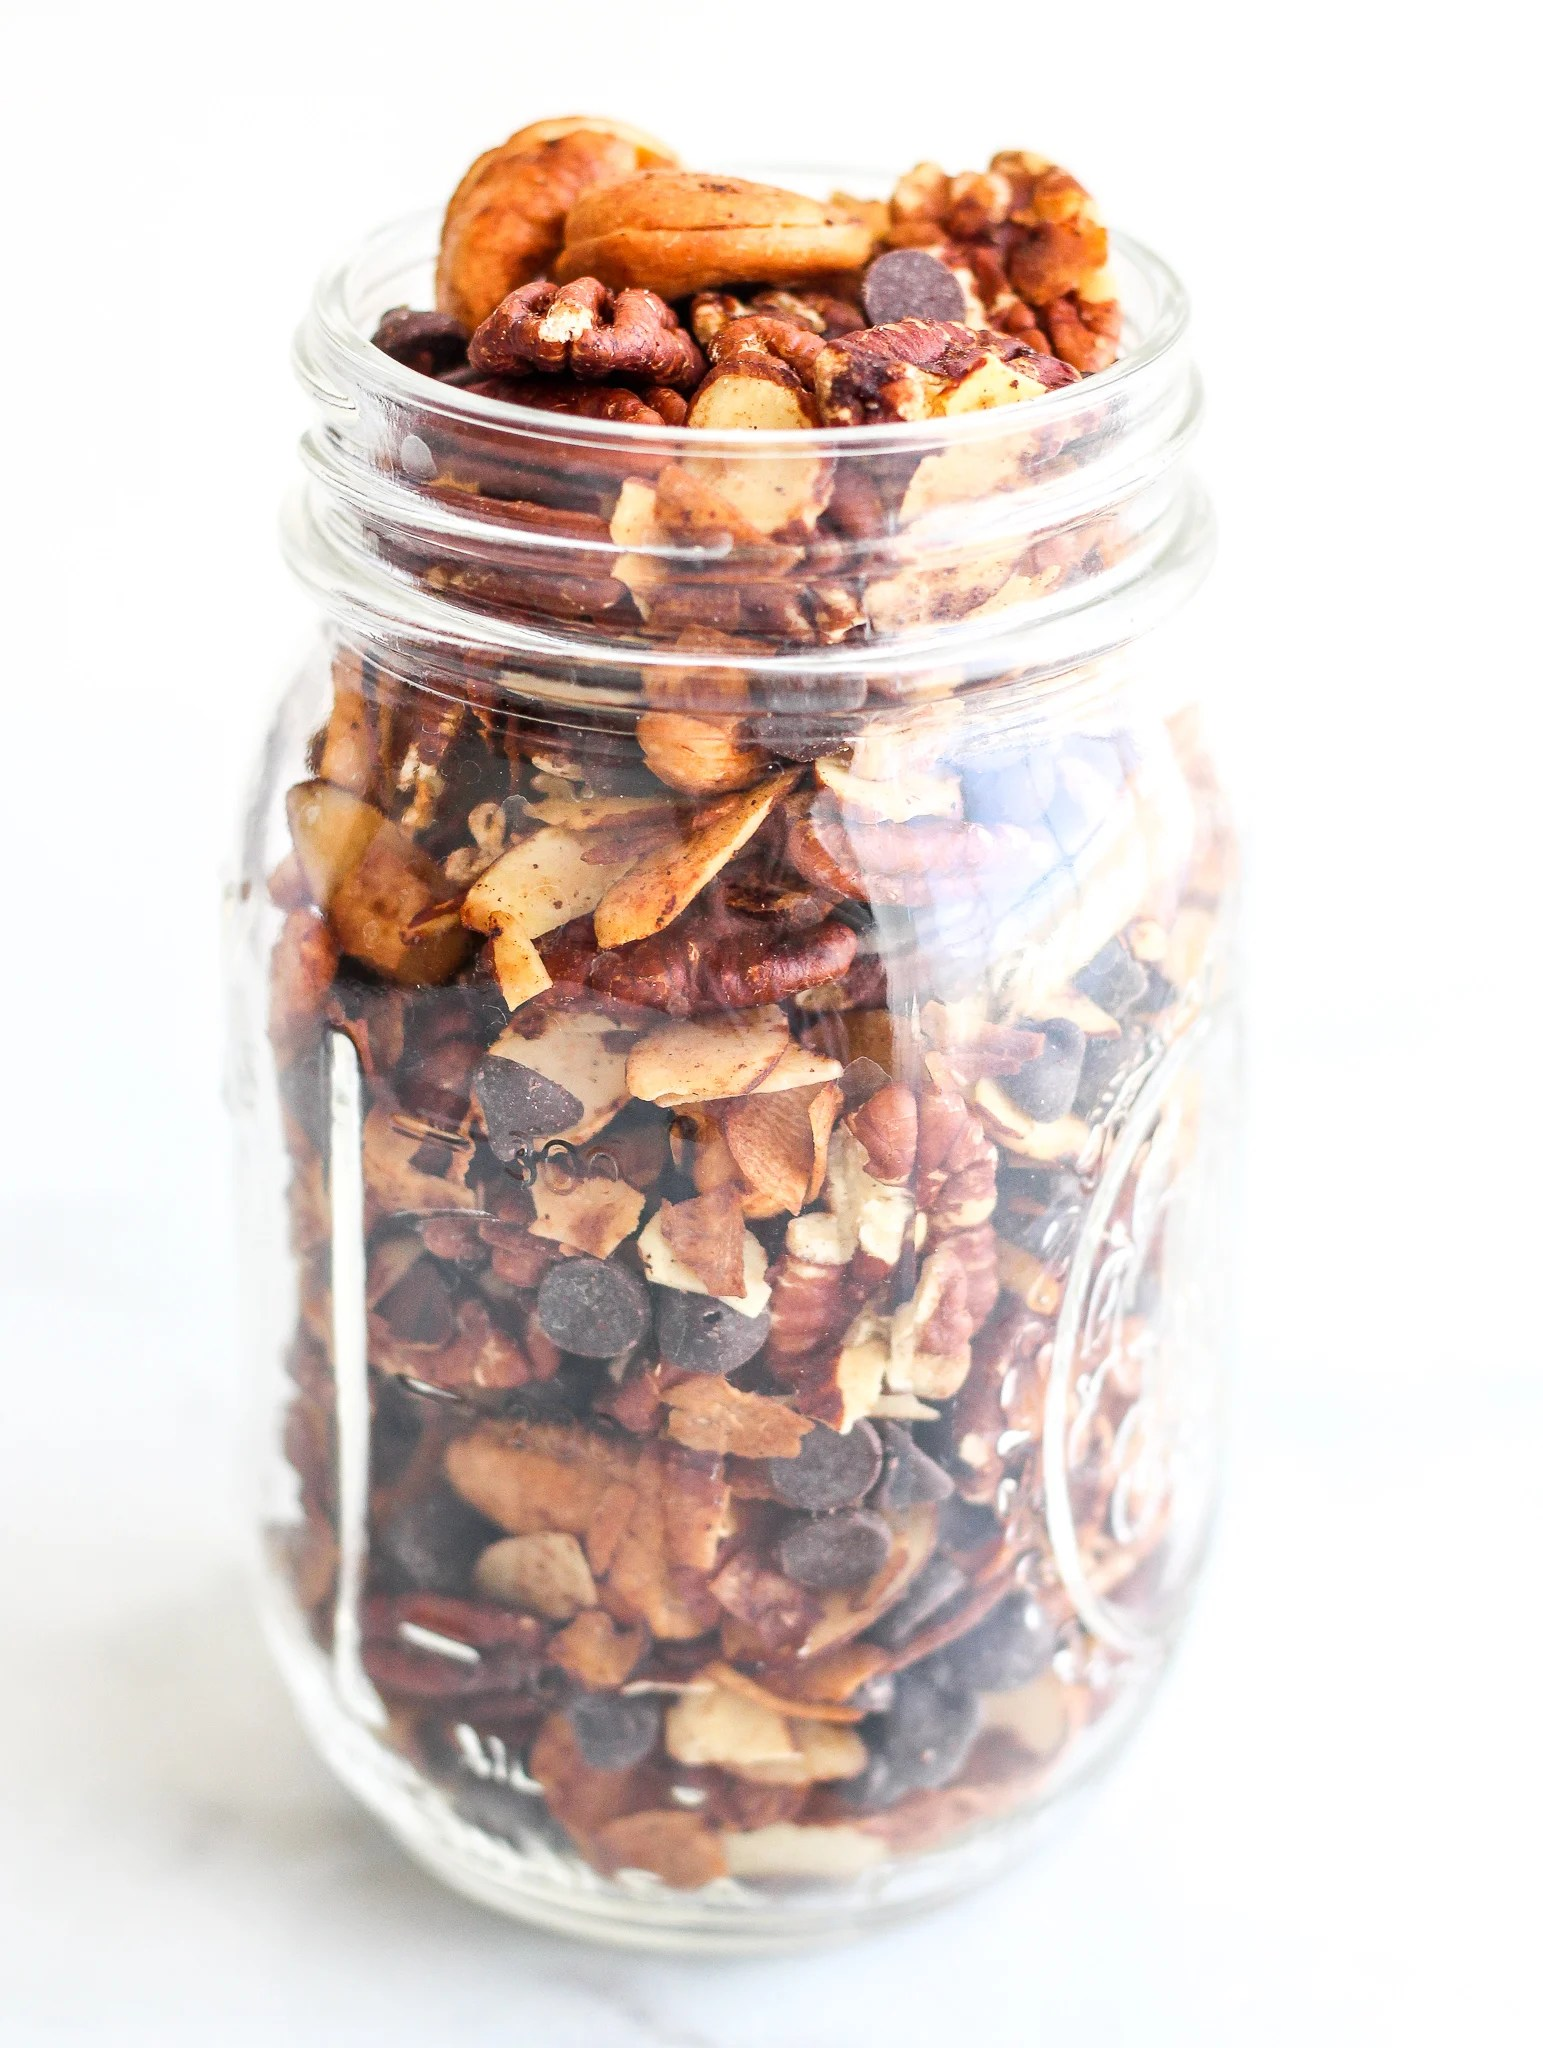 keto trail mix of almonds, cashews, pecans, coconut flakes and sugar free chocolate chips in a clear mason jar